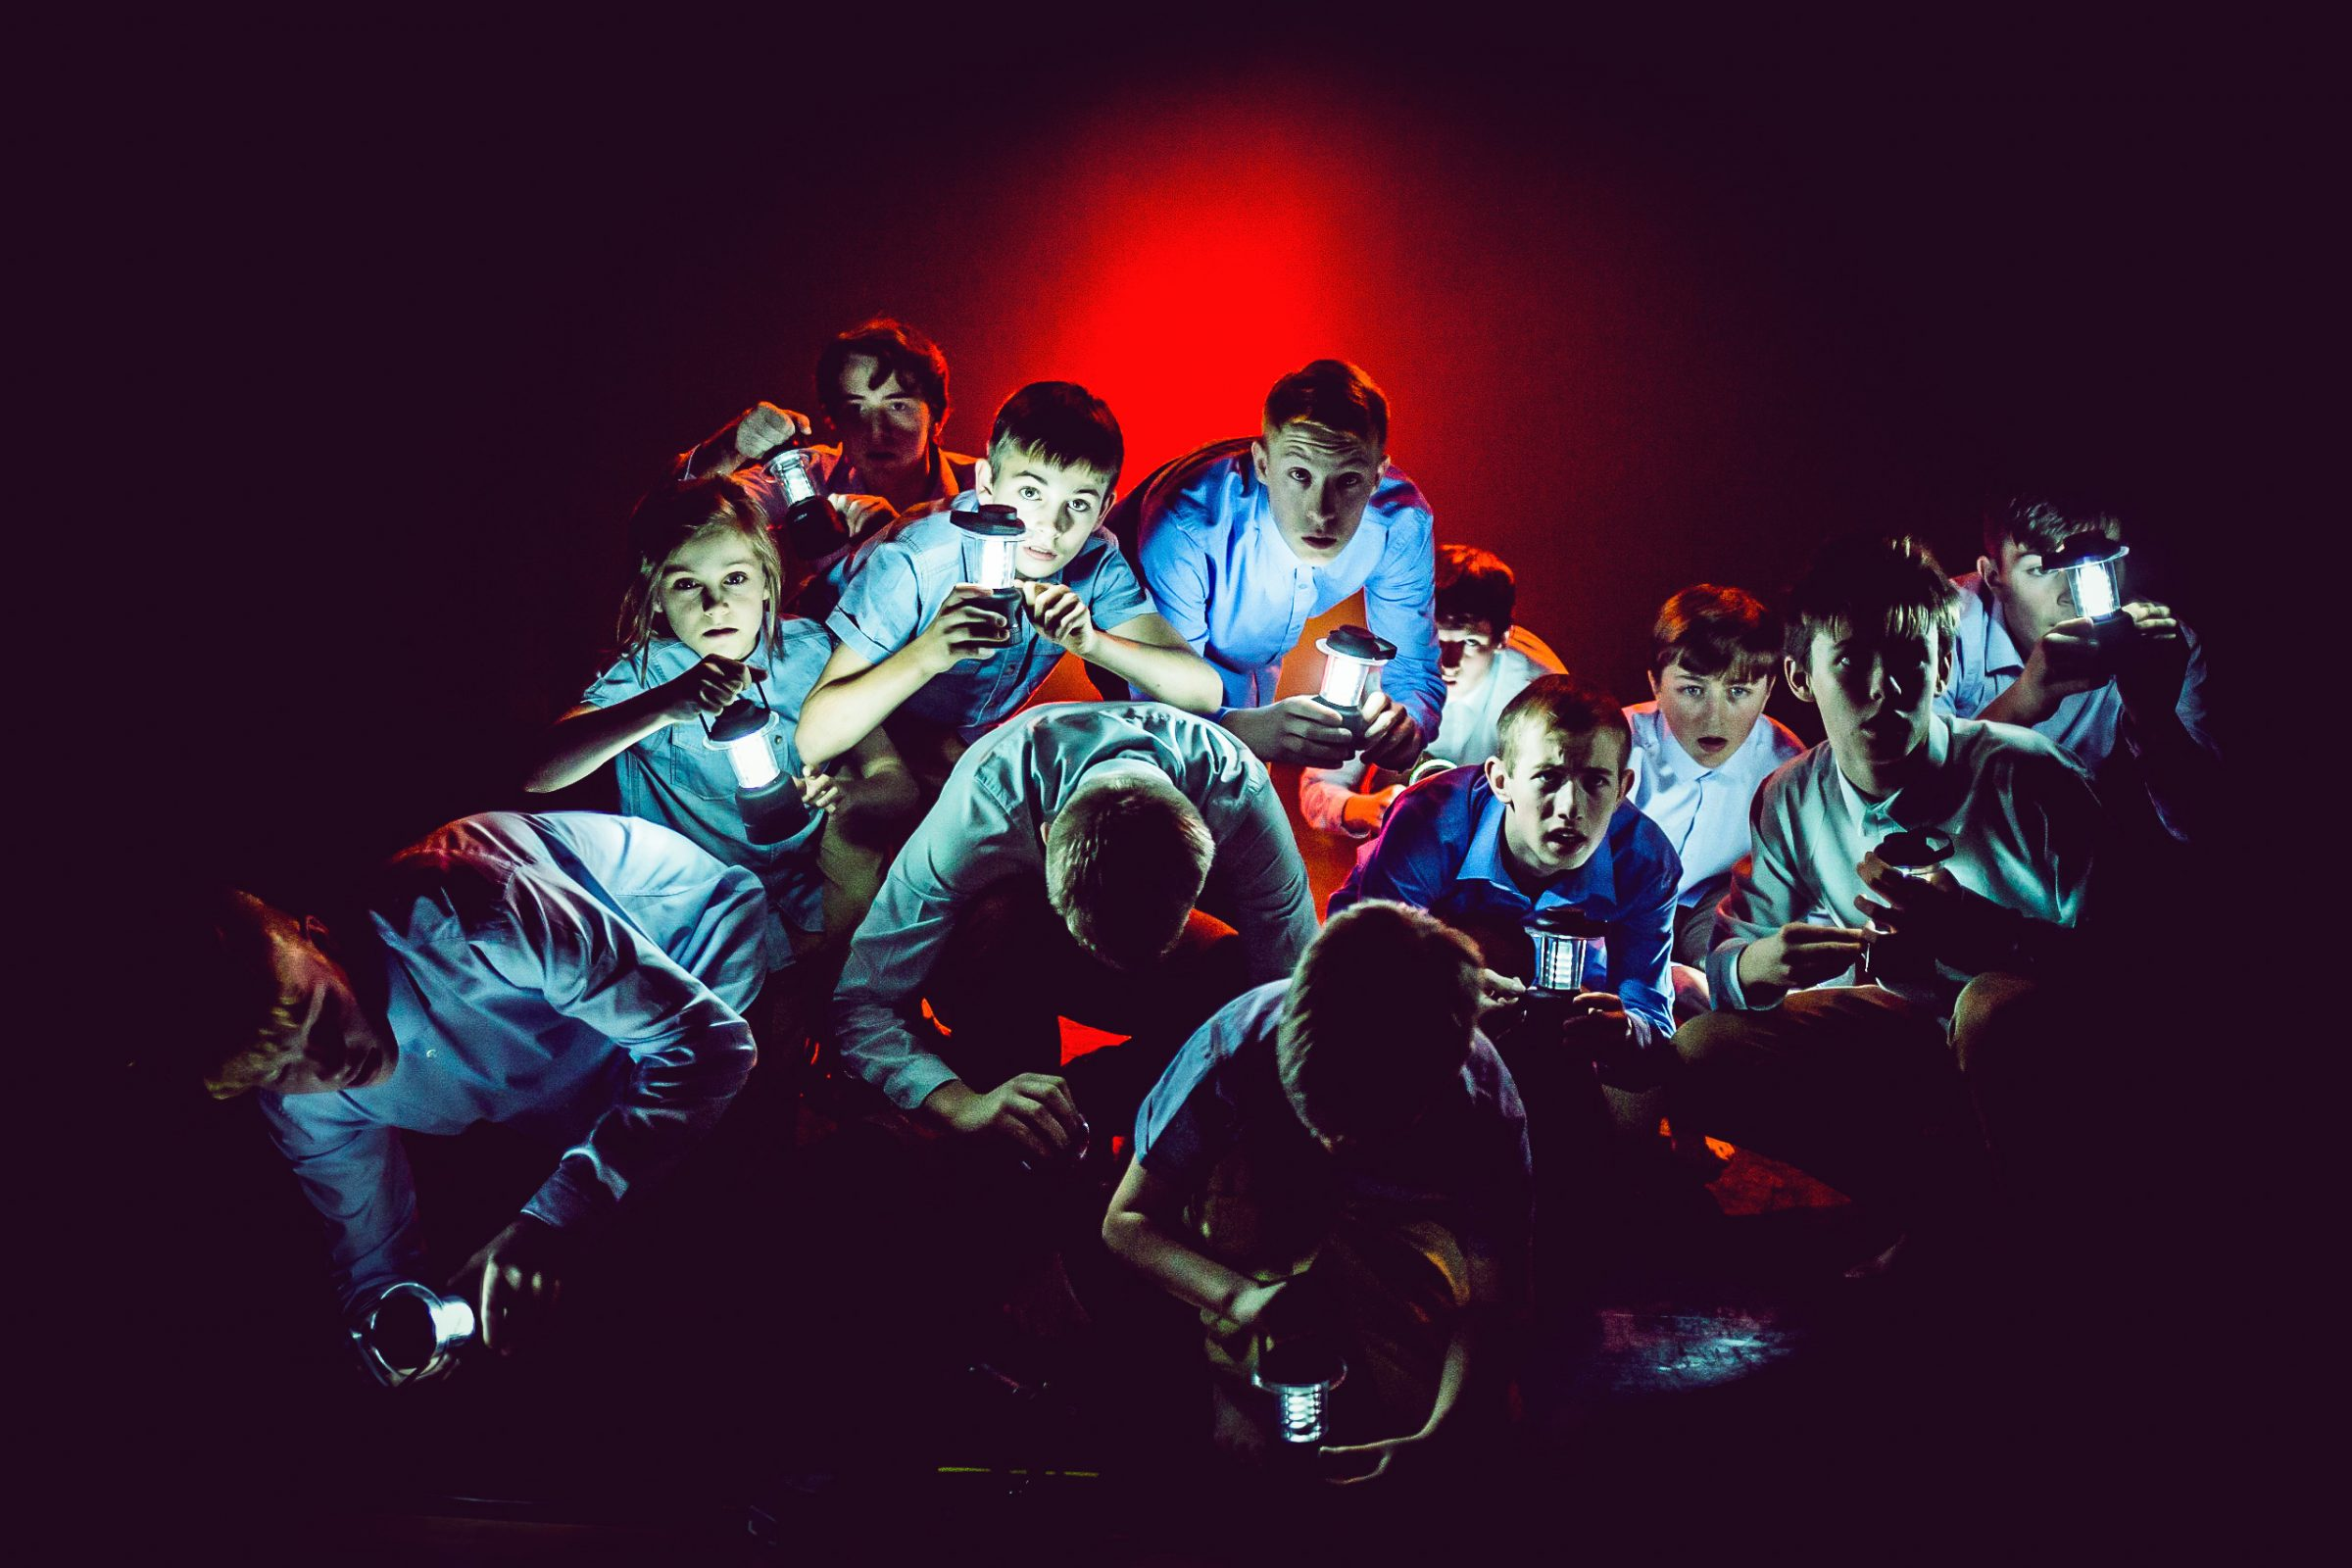 group of boys on a dark stage, shining torch lights in front of red back lighting. The boys are wearing blue tops and trousers and looking curious as they crouch in a huddle.